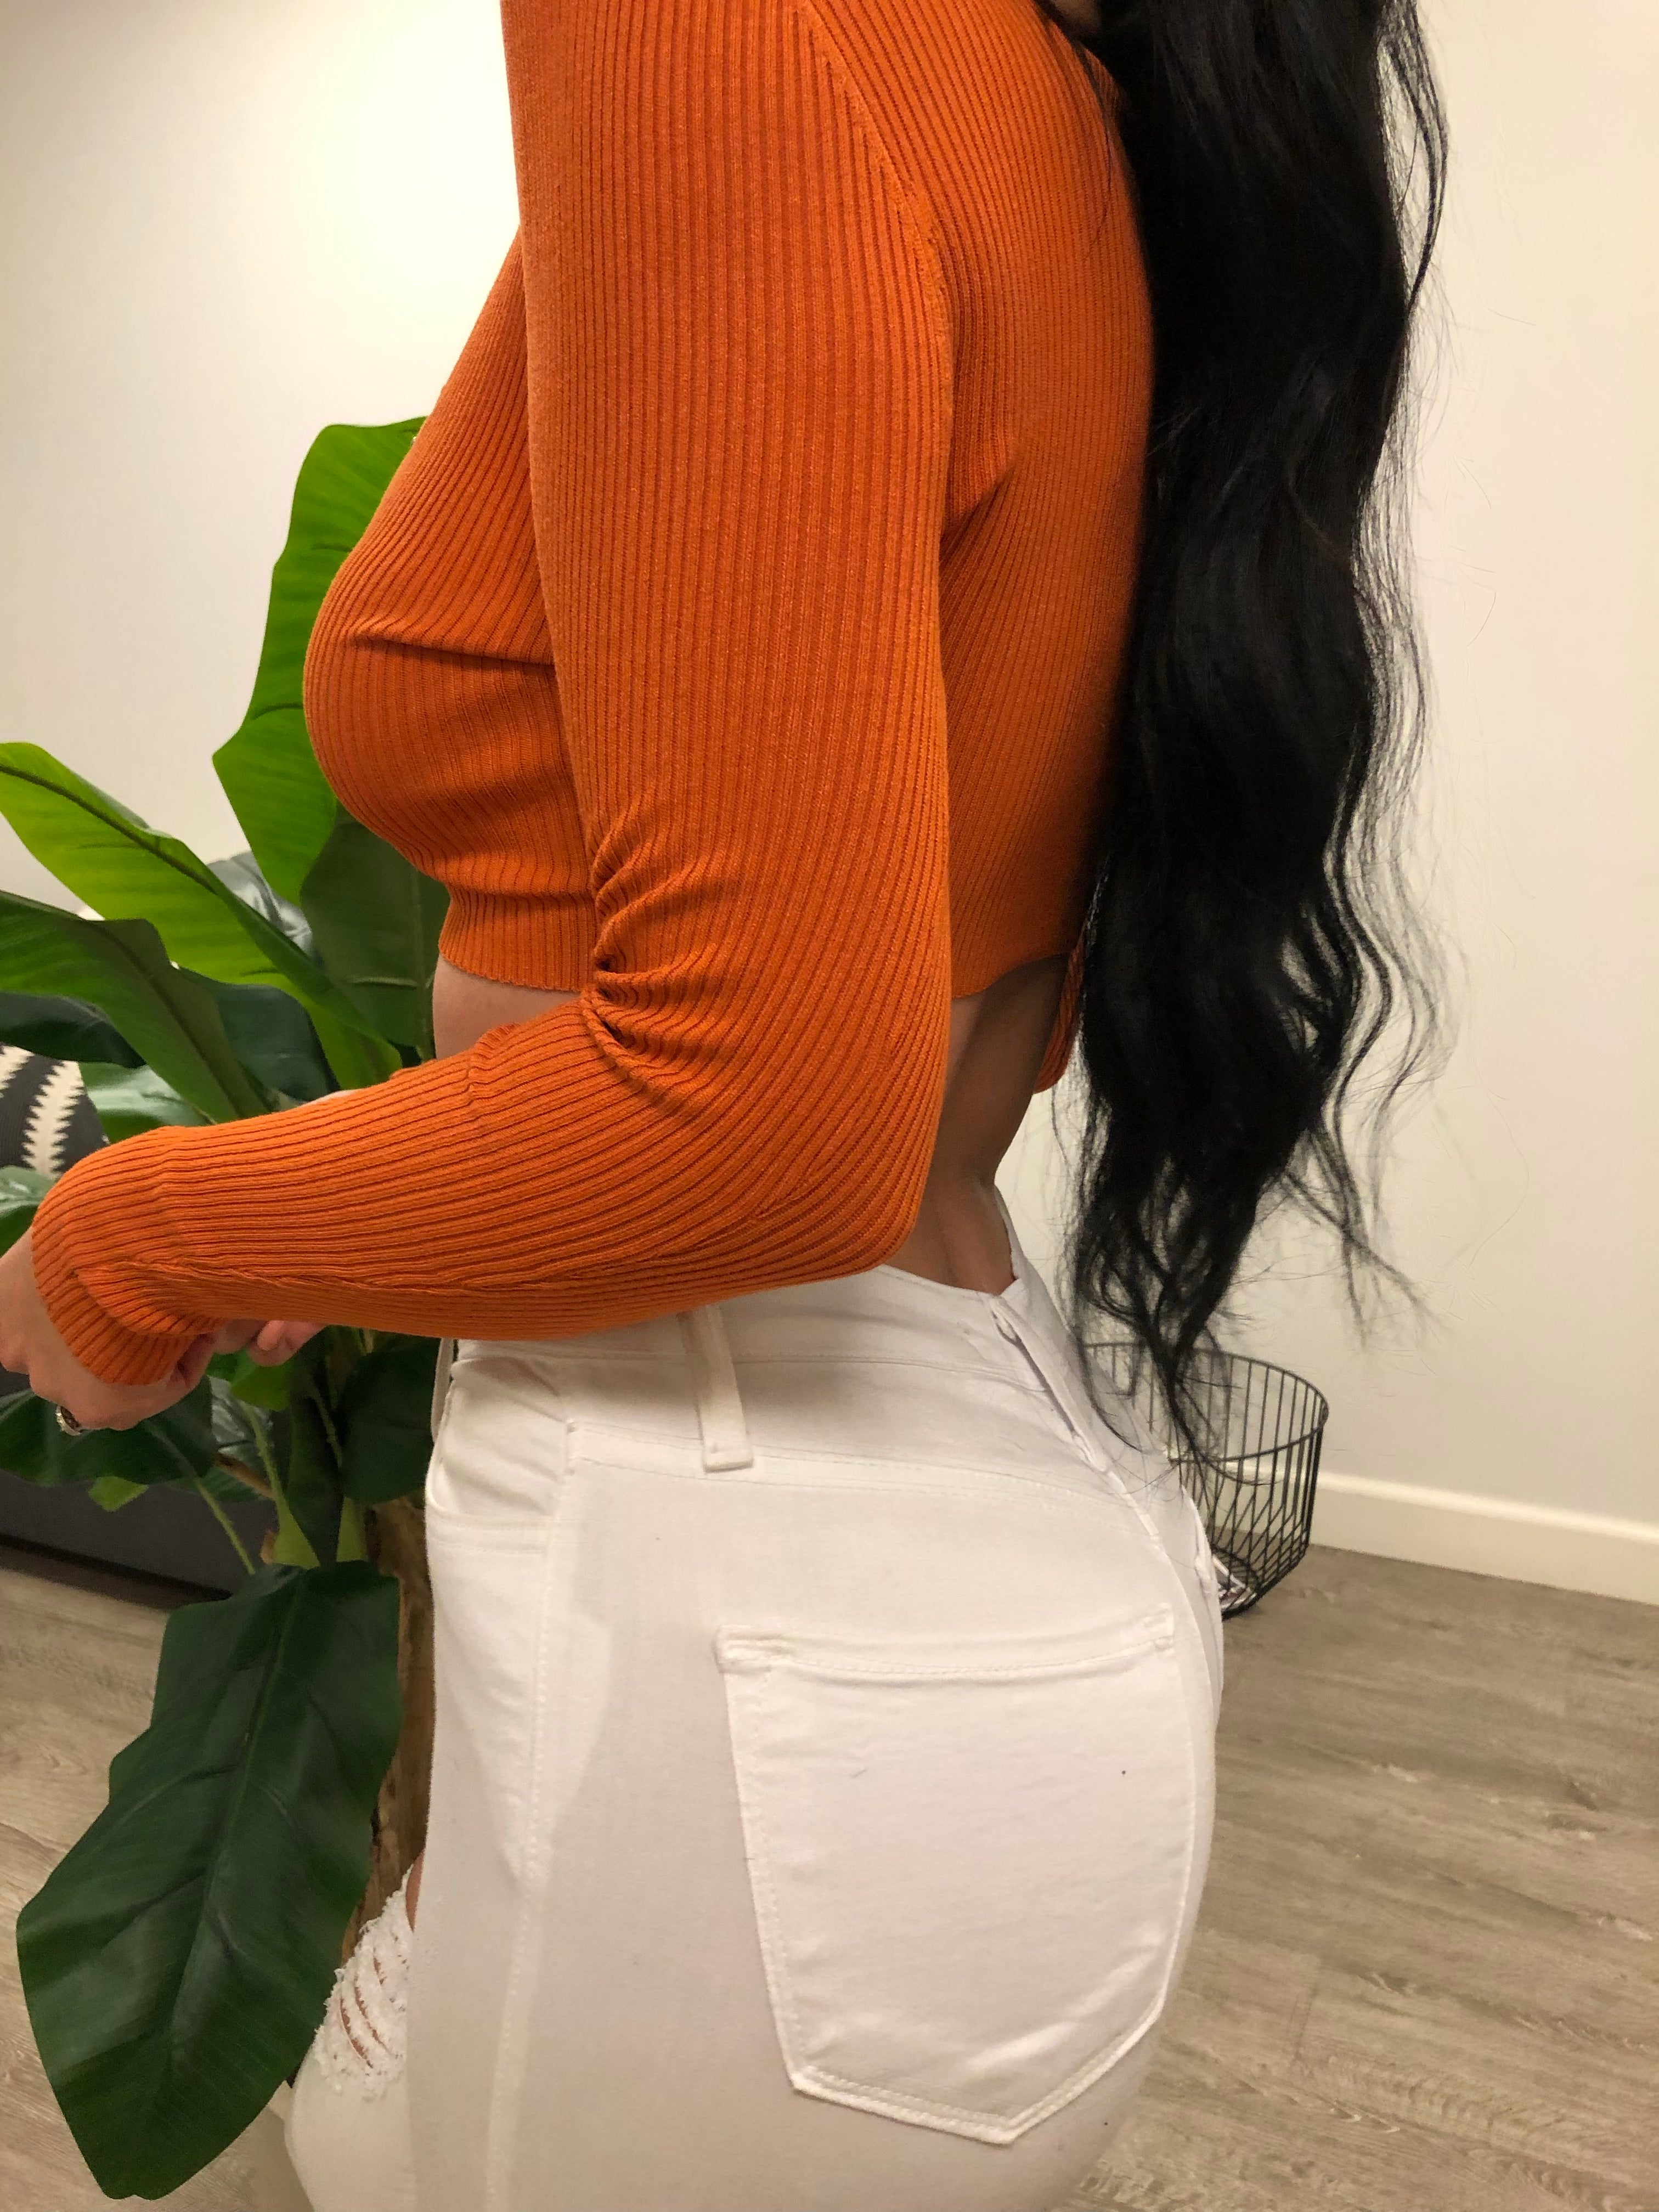 orange long sleeve crop top, has v neckline showing mid cleavage, has buttons in the front